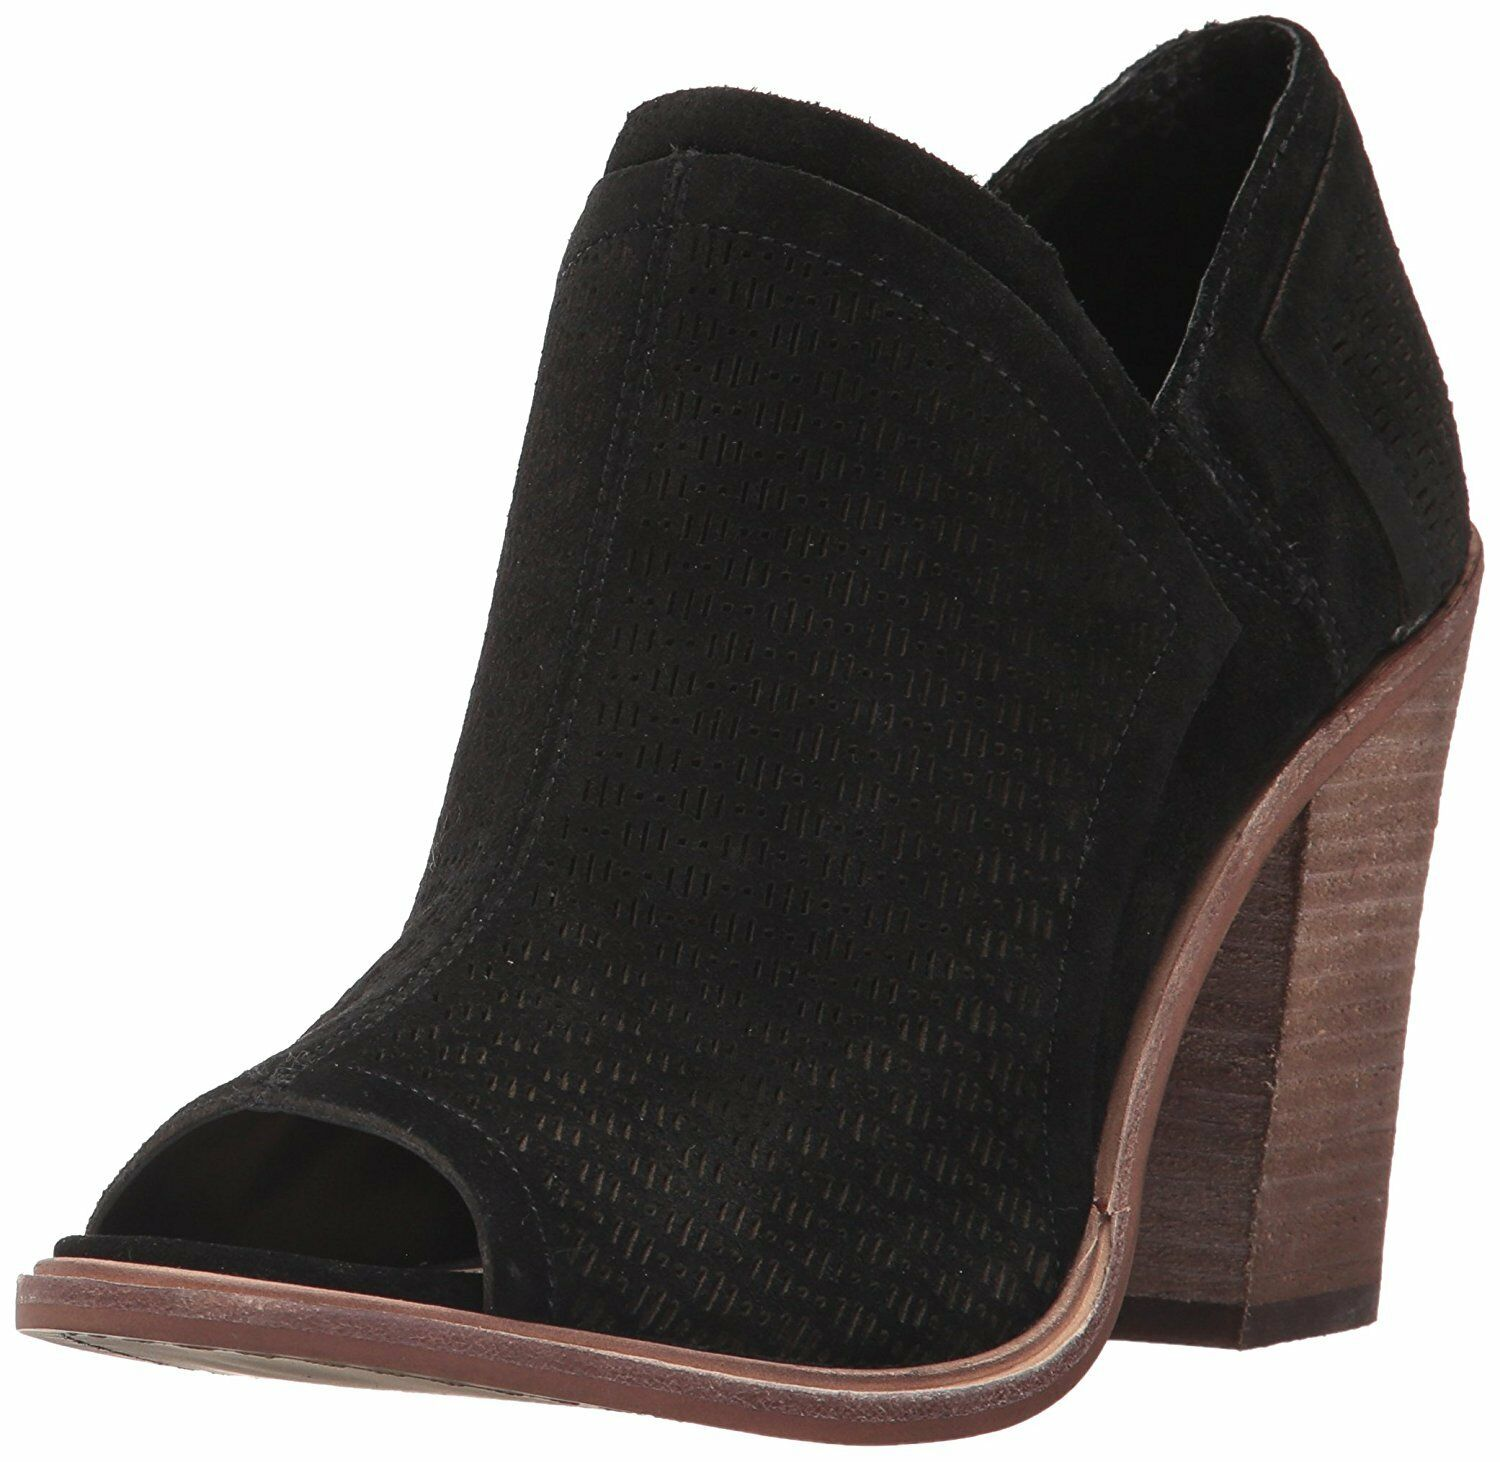 Vince Camuto Women's Karini Ankle Boot, Black